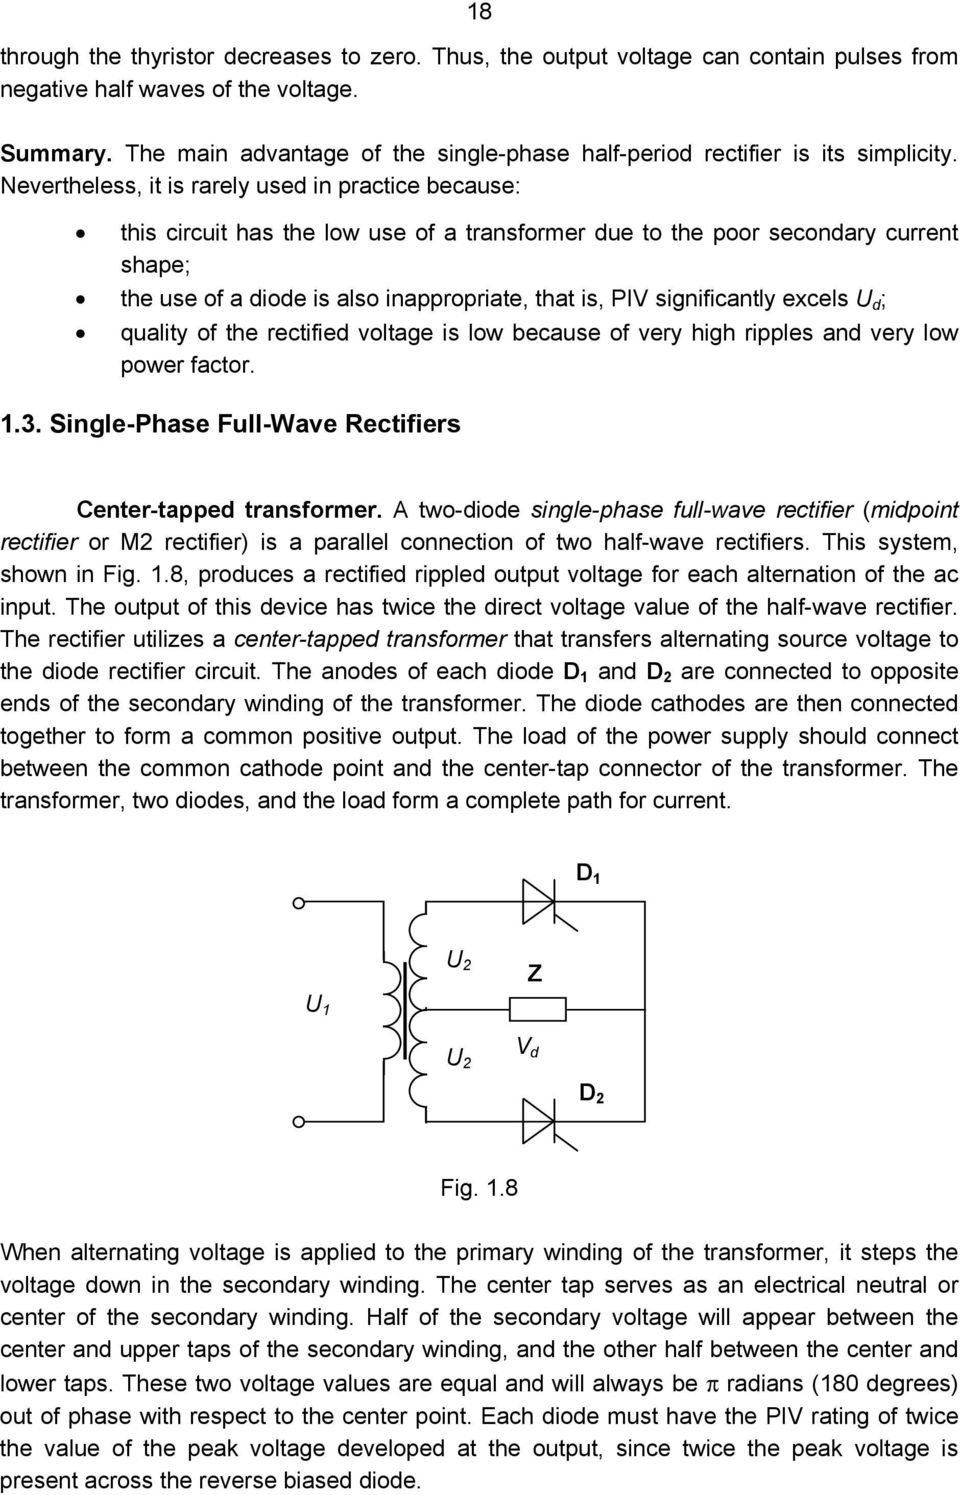 Valery Vodovozov Raik Jansikene Power Electronic Converters Pdf Mos Controlled Thyristor Mct Circuits And Diagram Nevertheless It Is Rarely Used In Practice Because This Circuit Has The Low Use